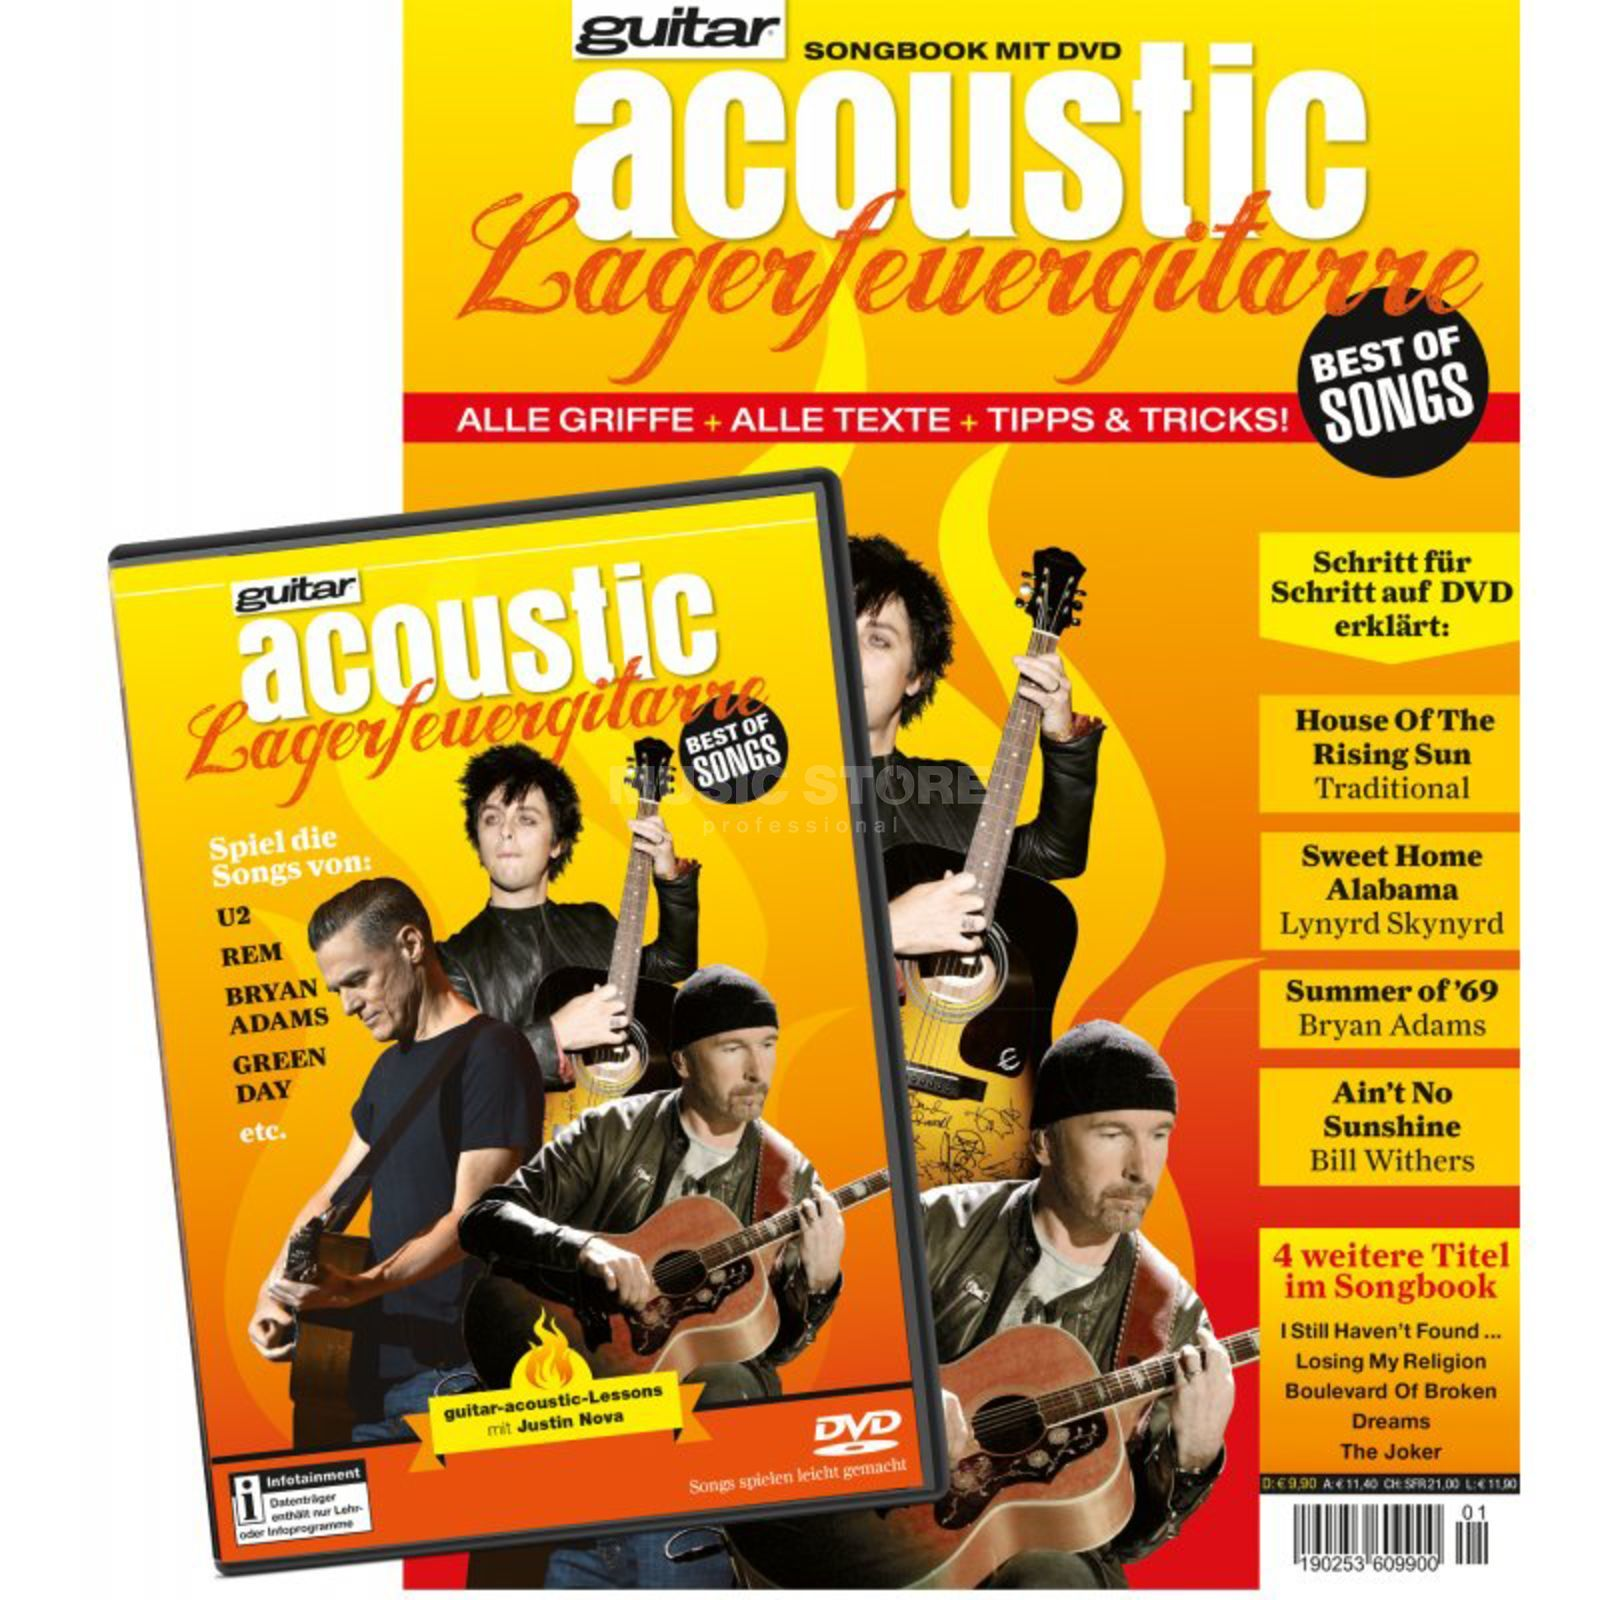 PPV Medien guitar acoustic: Lagerfeuergitarre Best of Songs Produktbillede